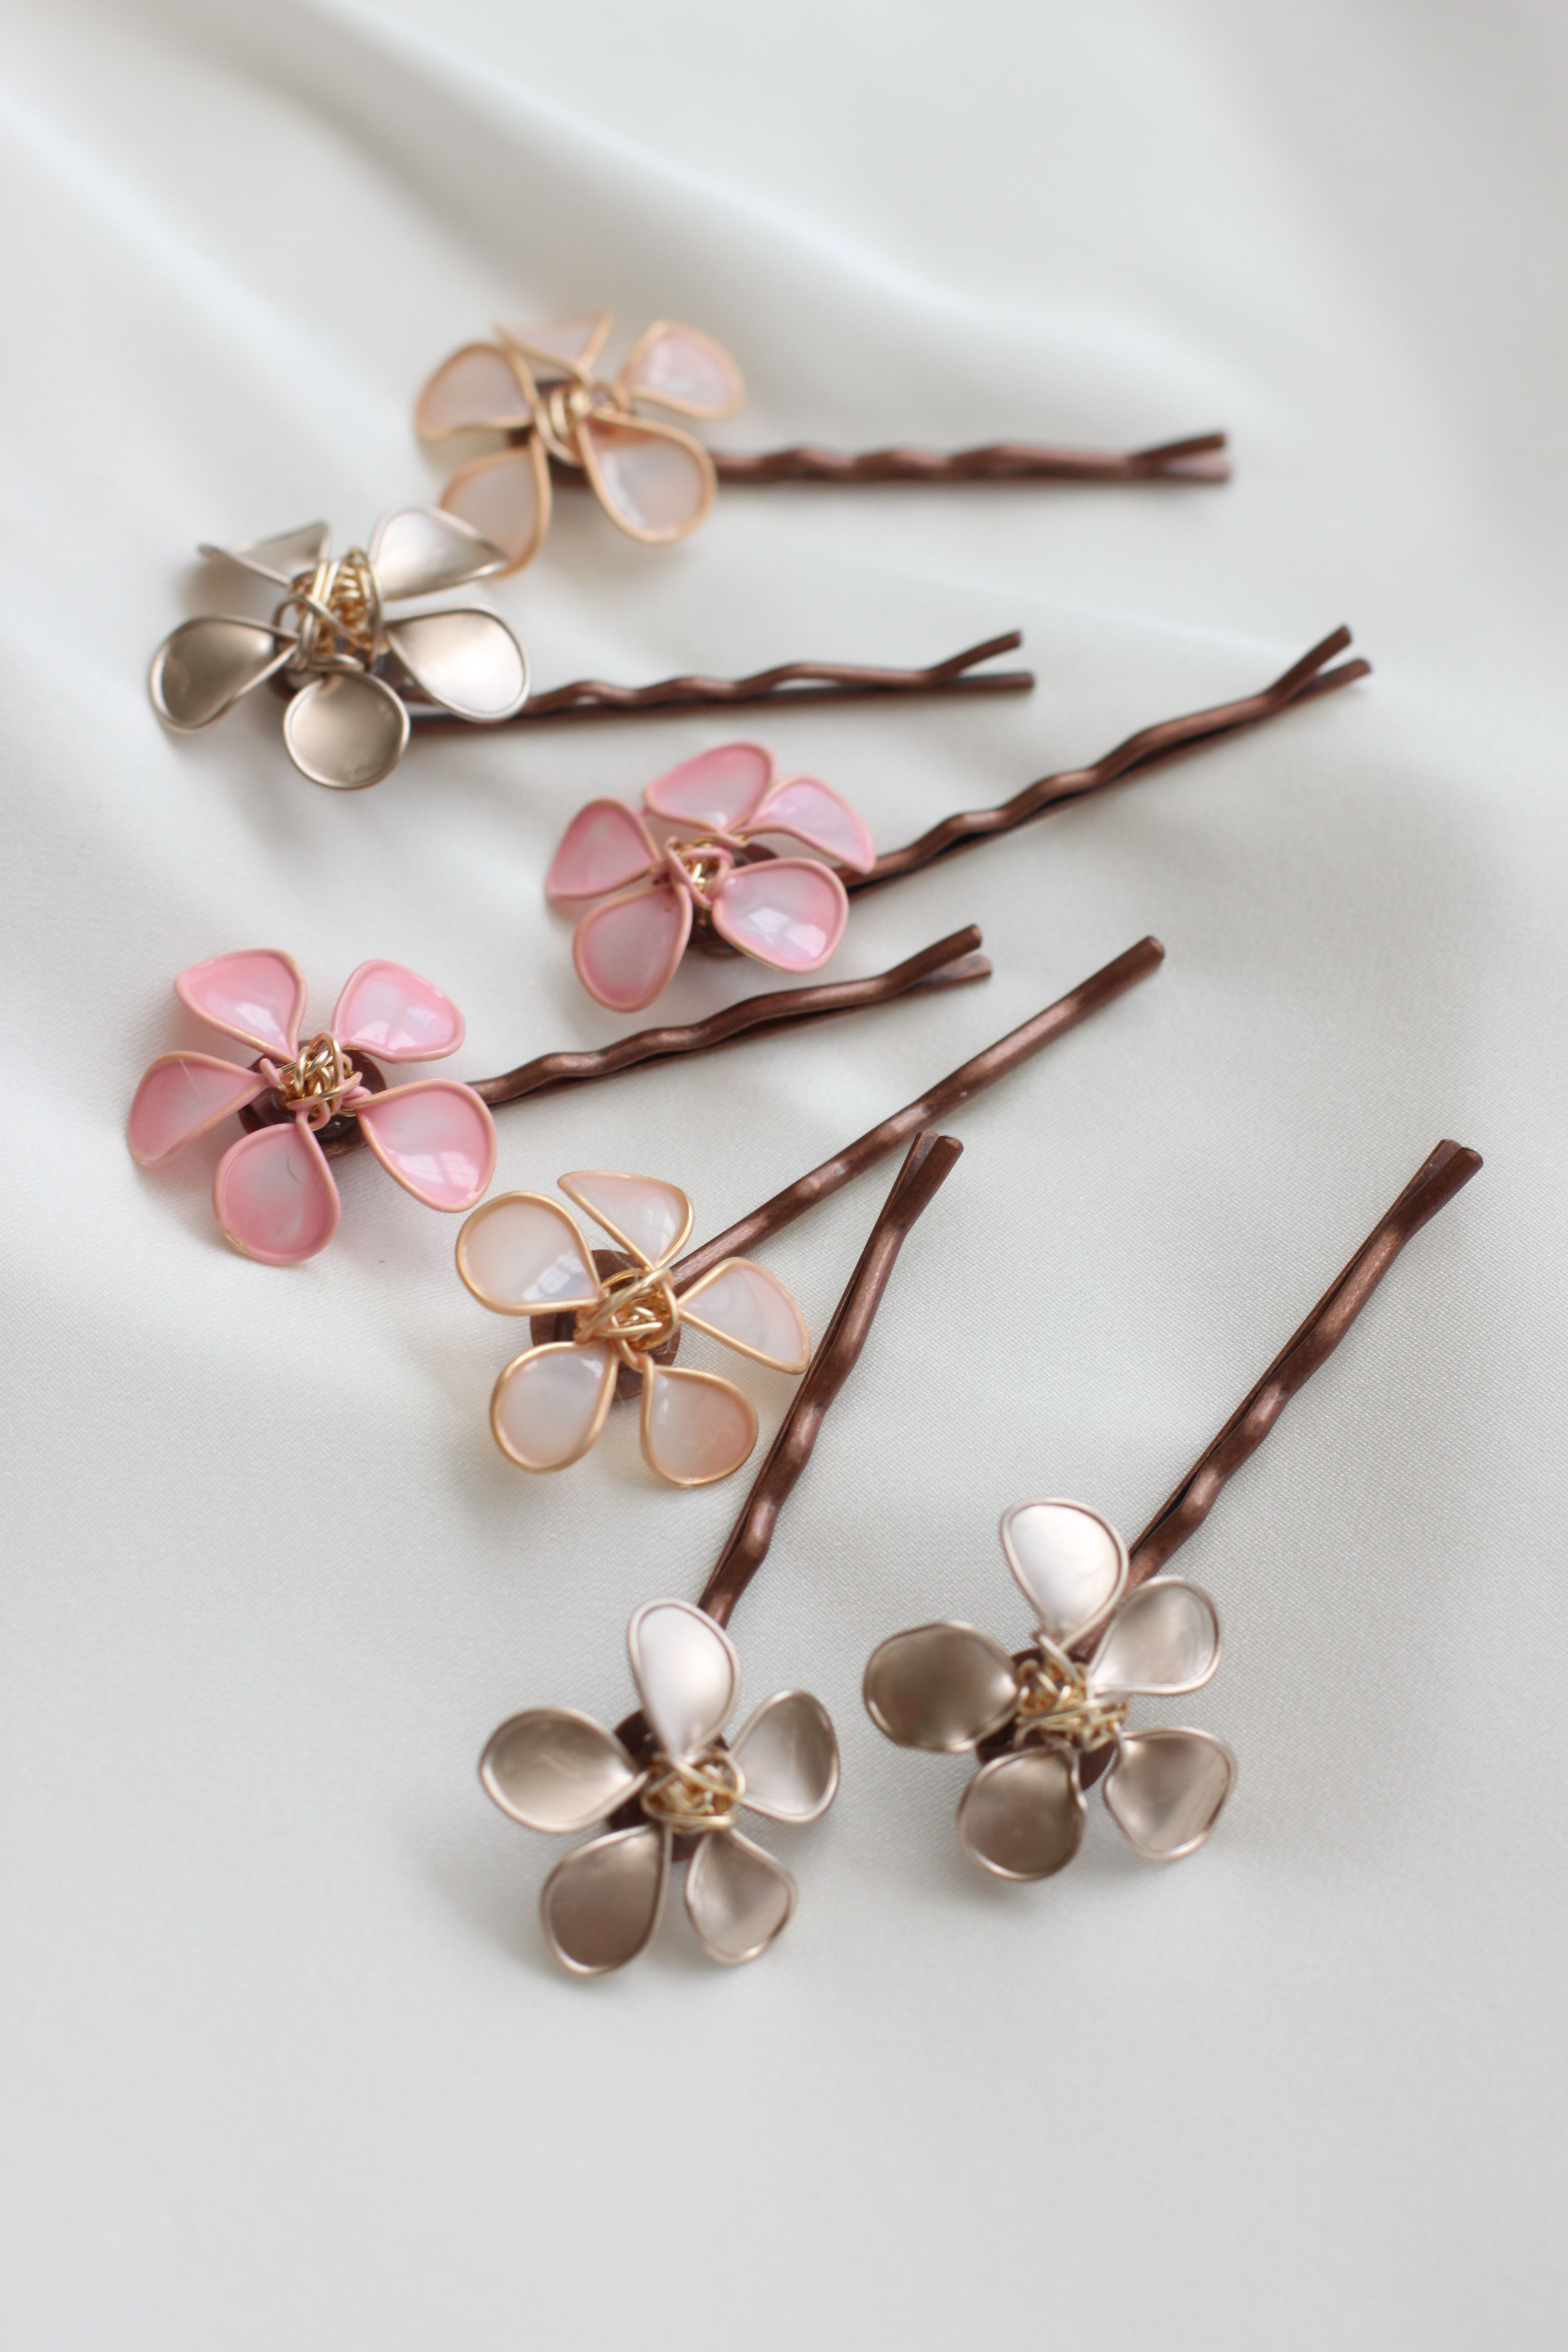 flower bobby pins | Hair and Beauty and Health | Pinterest ...